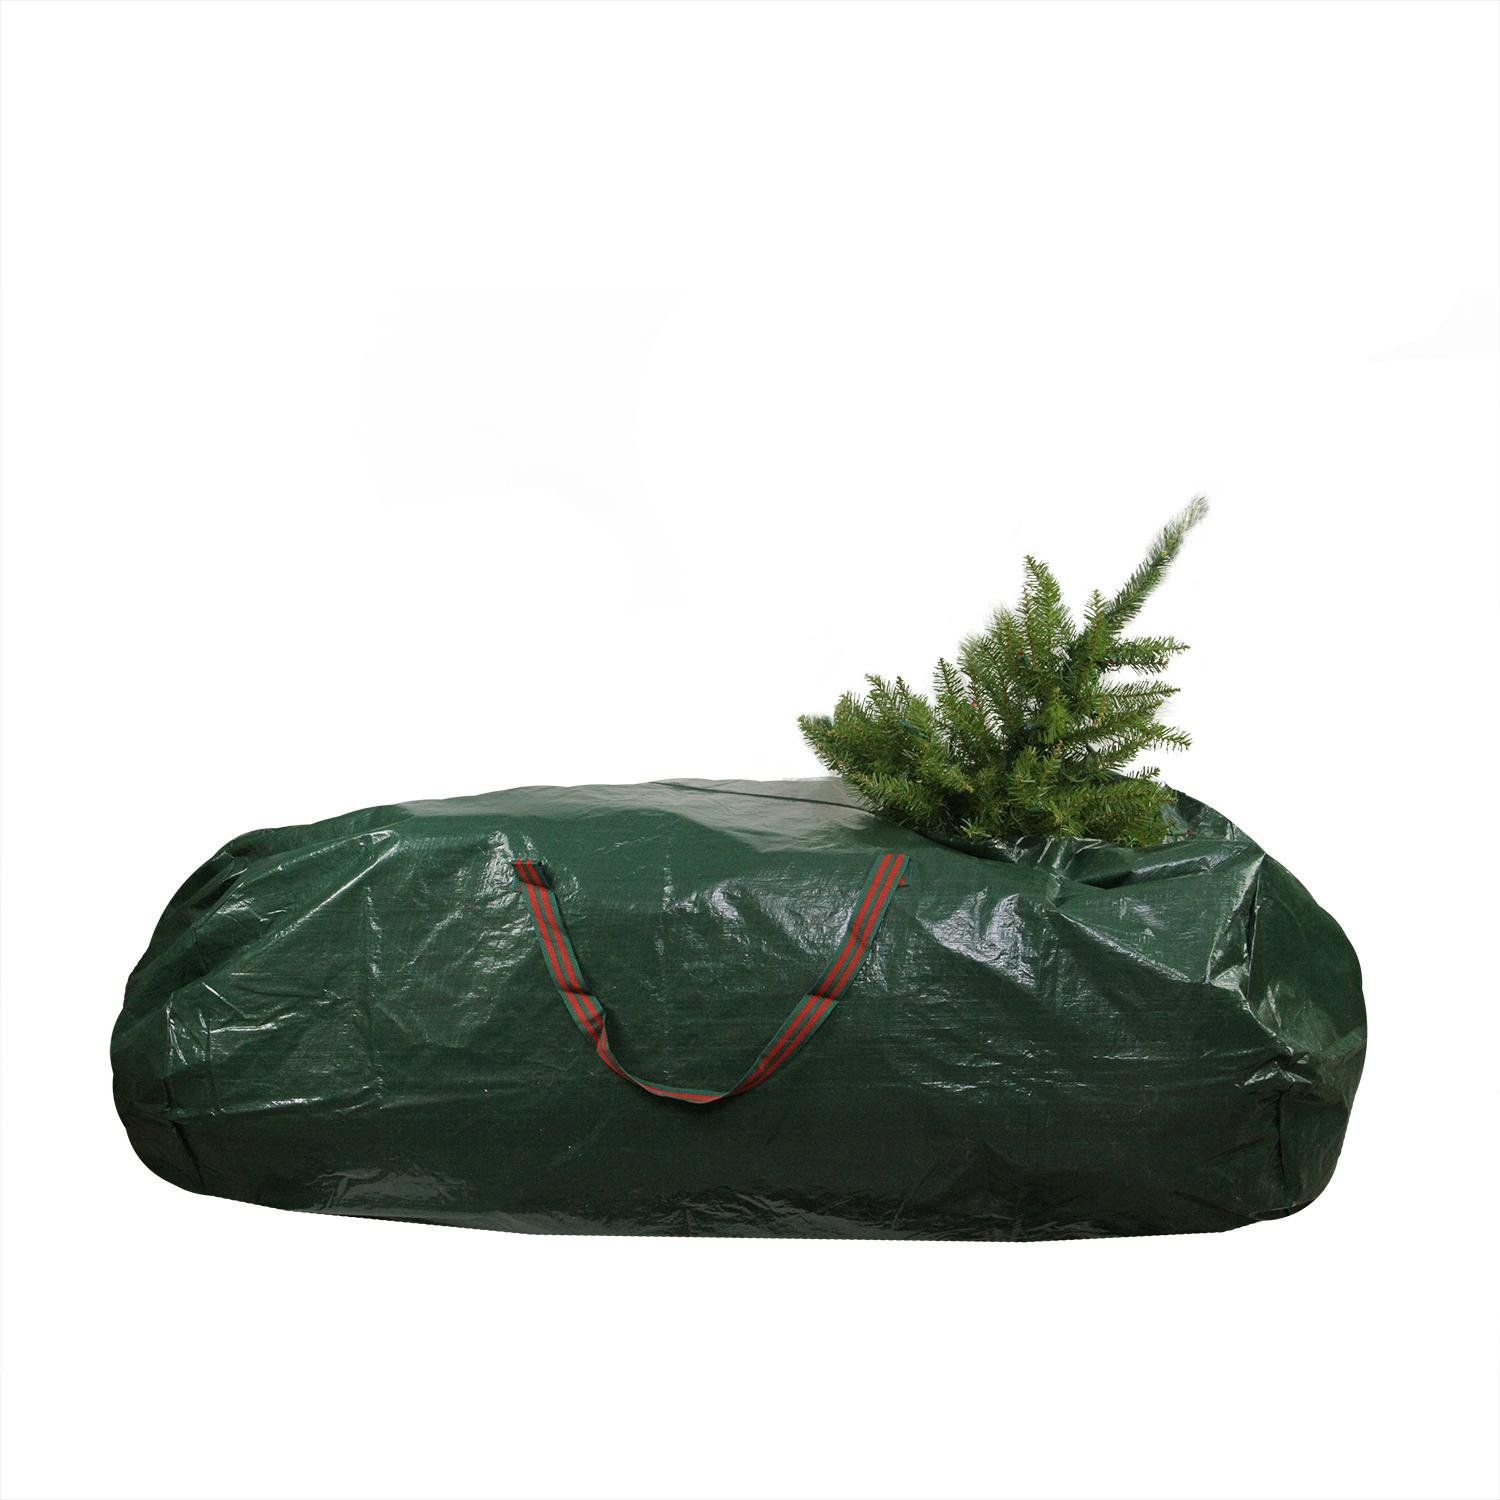 Case of 16 Artificial Christmas Tree Storage Bag - Fits Up To A 9' Tree